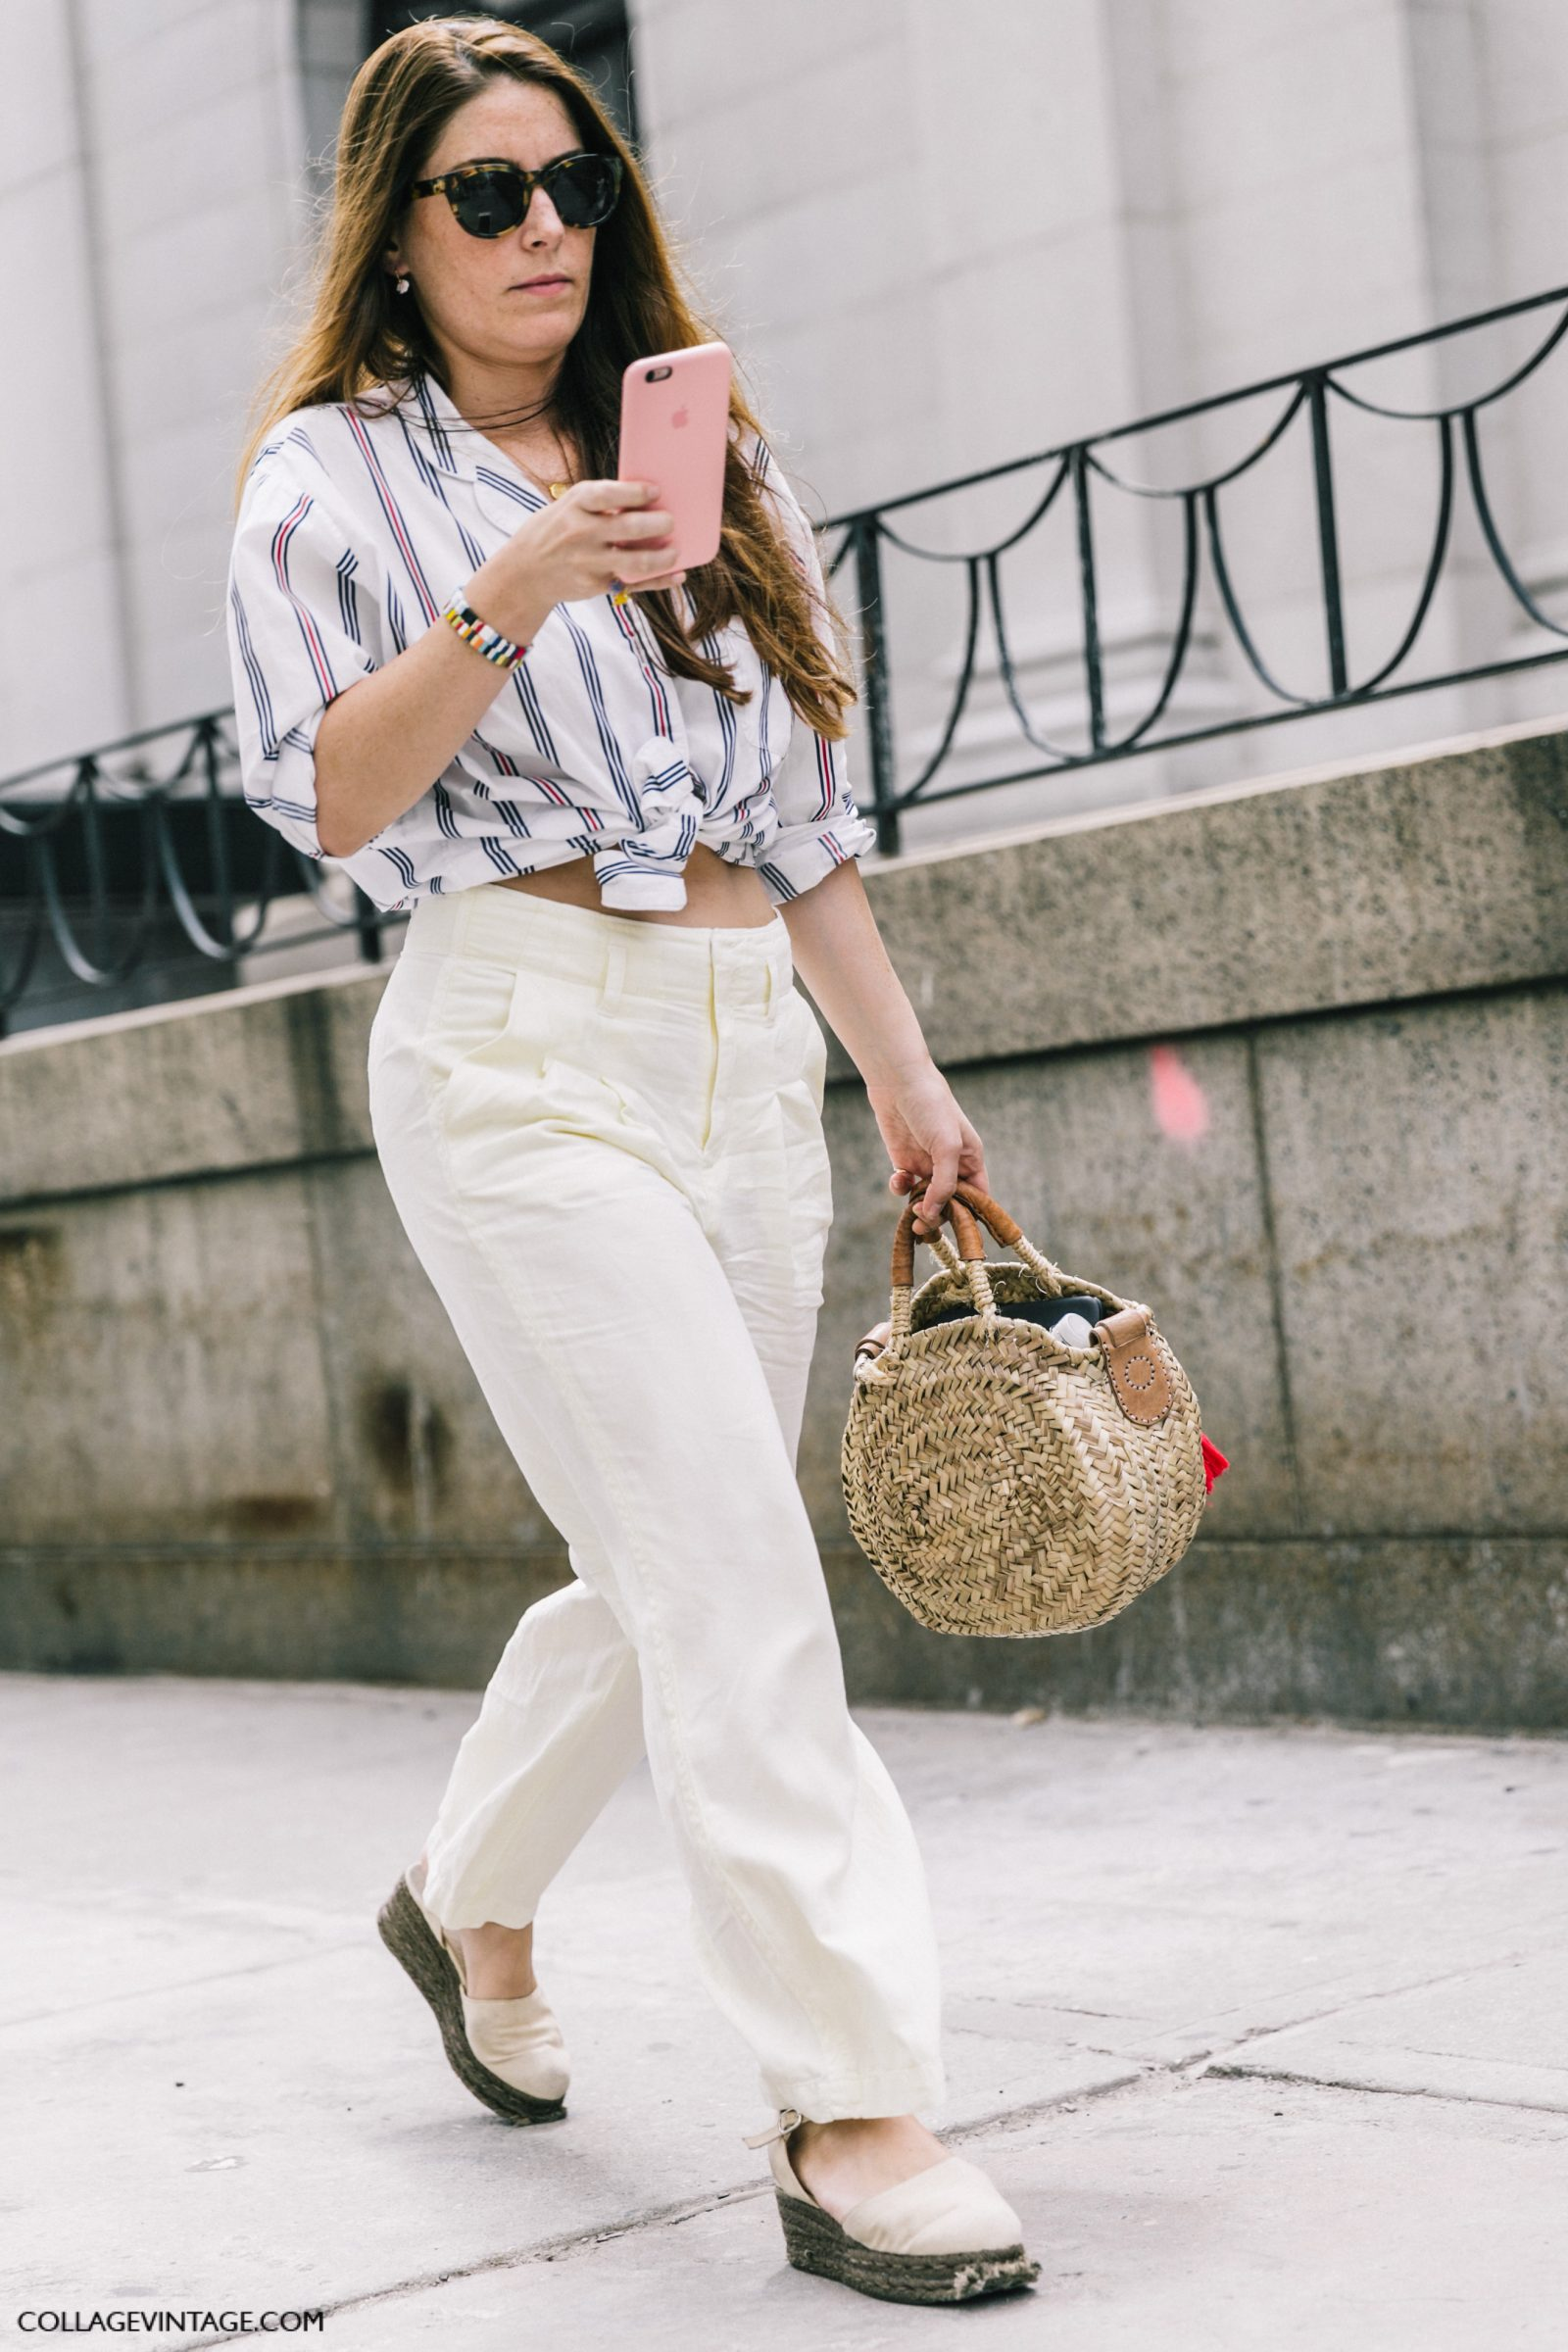 nyfw-new_york_fashion_week_ss17-street_style-outfits-collage_vintage-vintage-tome-92